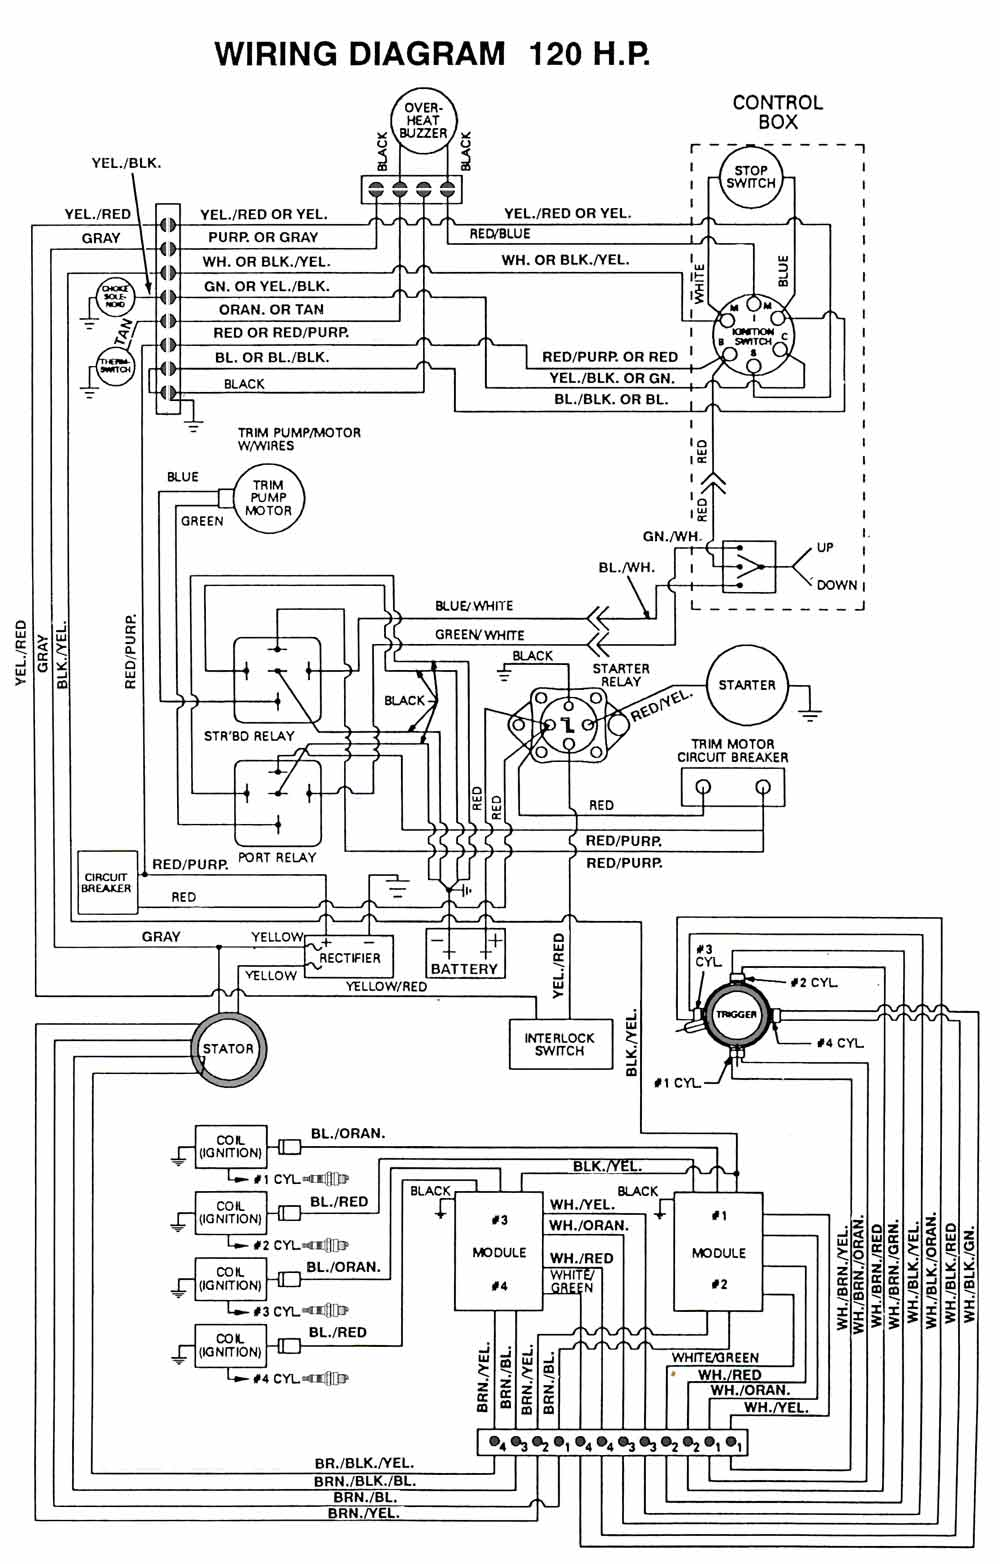 mastertech marine -- chrysler & force outboard wiring diagrams 125 hp force outboard wiring diagram